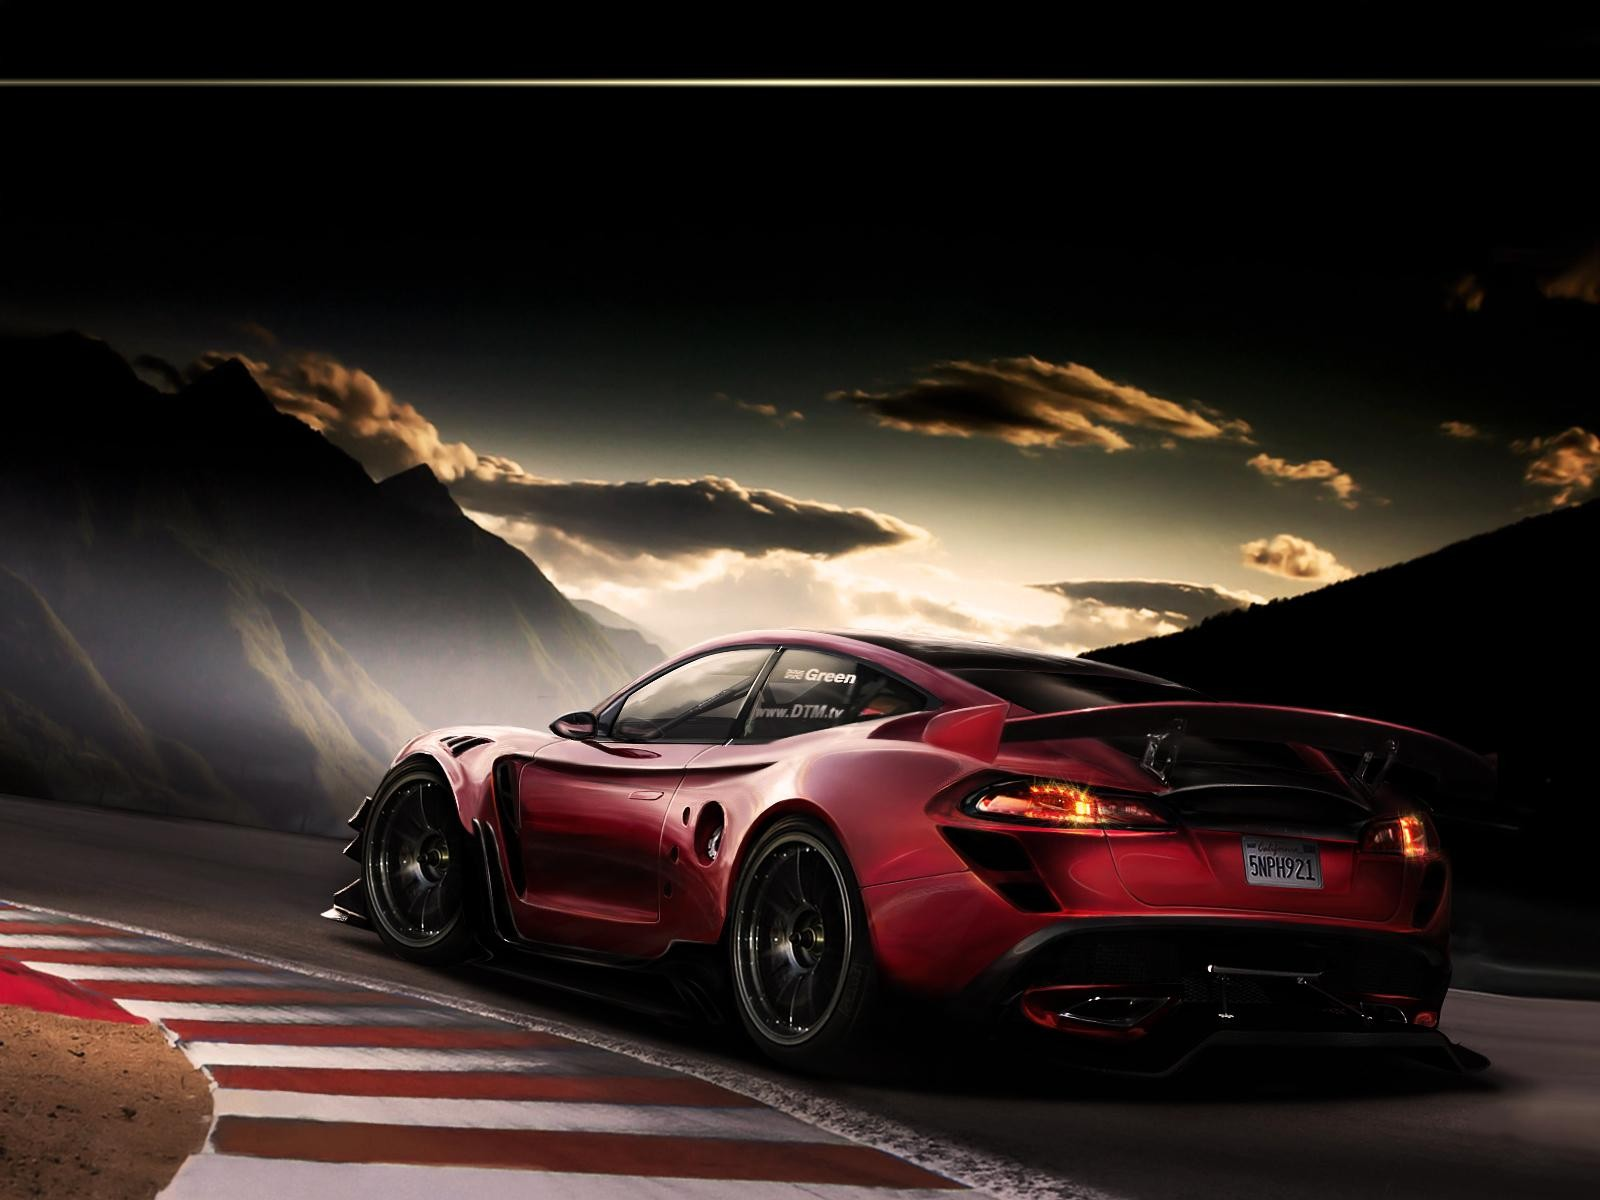 Cool Red Sports Racing Car HD Wallpaper   StylishHDWallpapers 1600x1200